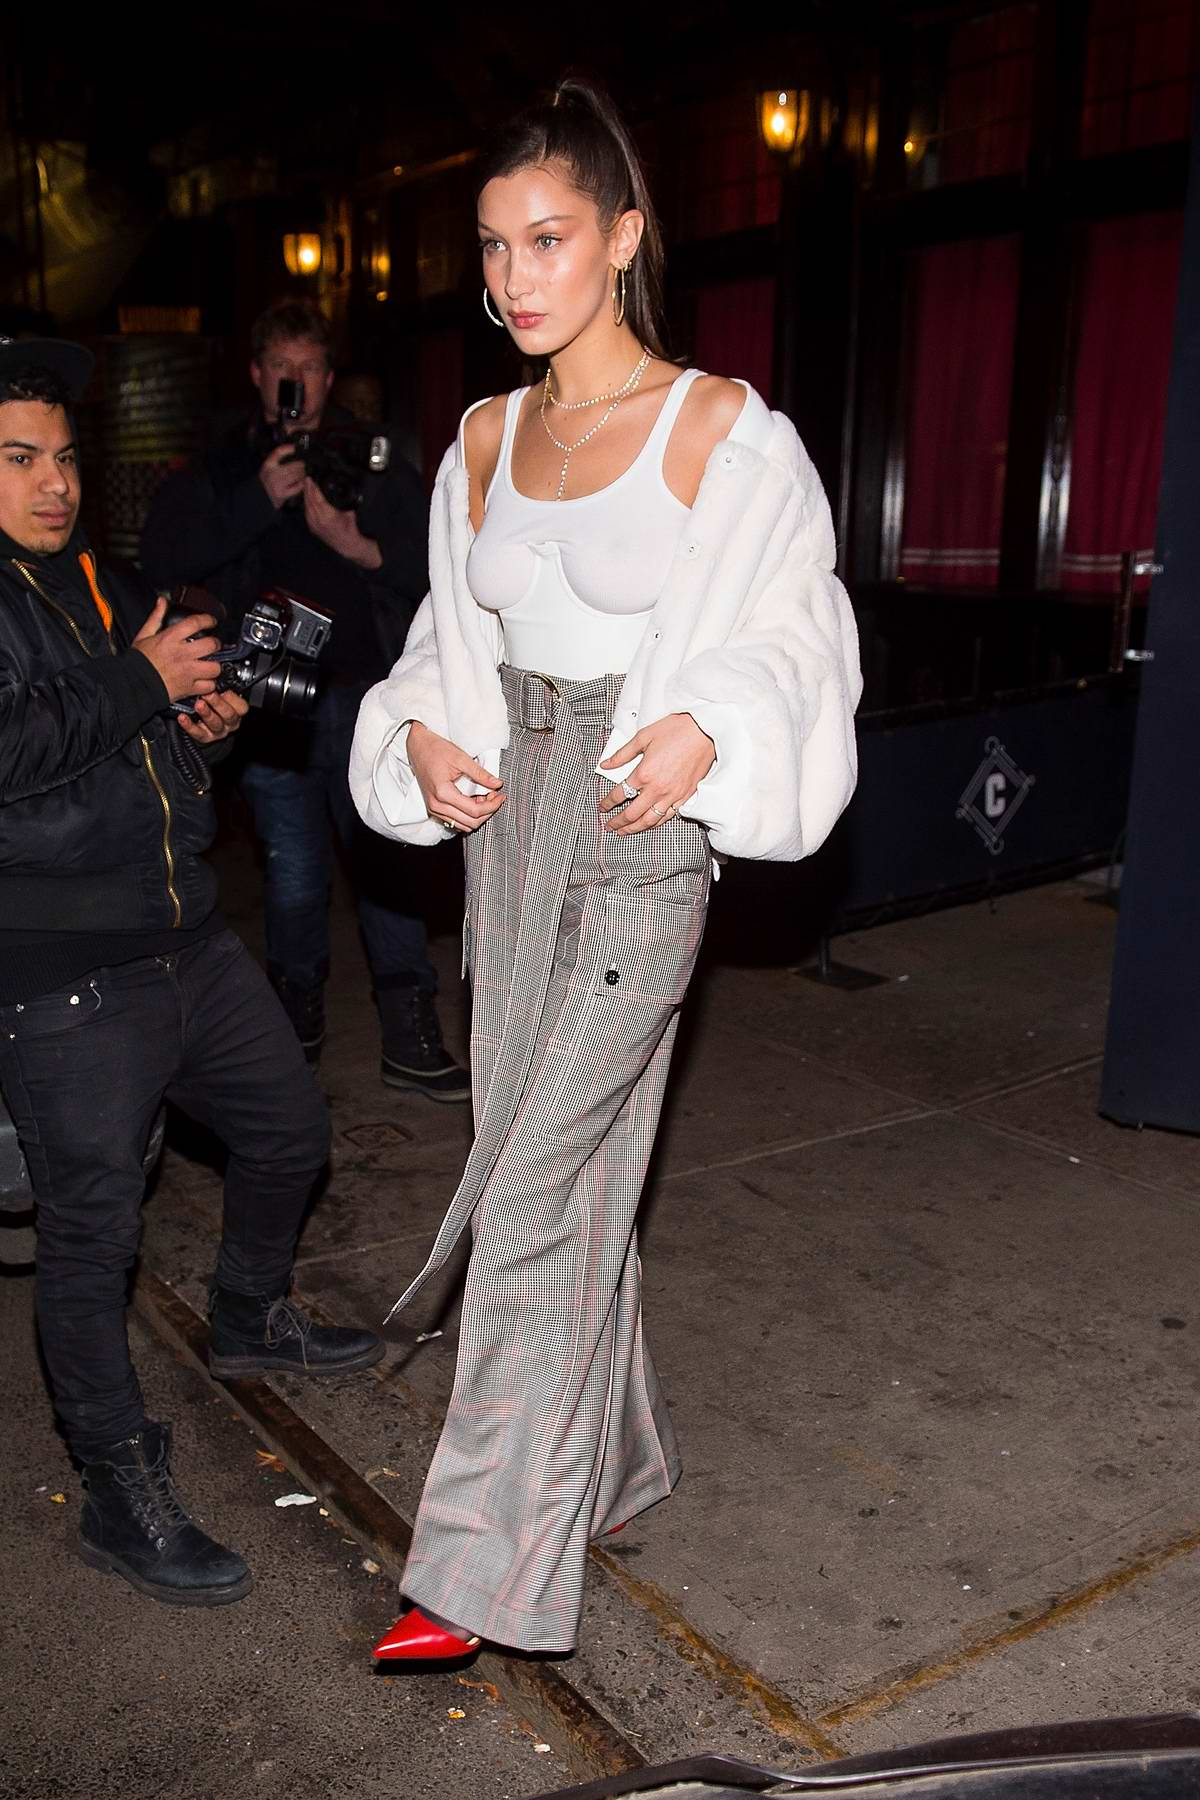 Bella Hadid wears a white jacket over a vest top while heading for a night out in New York City